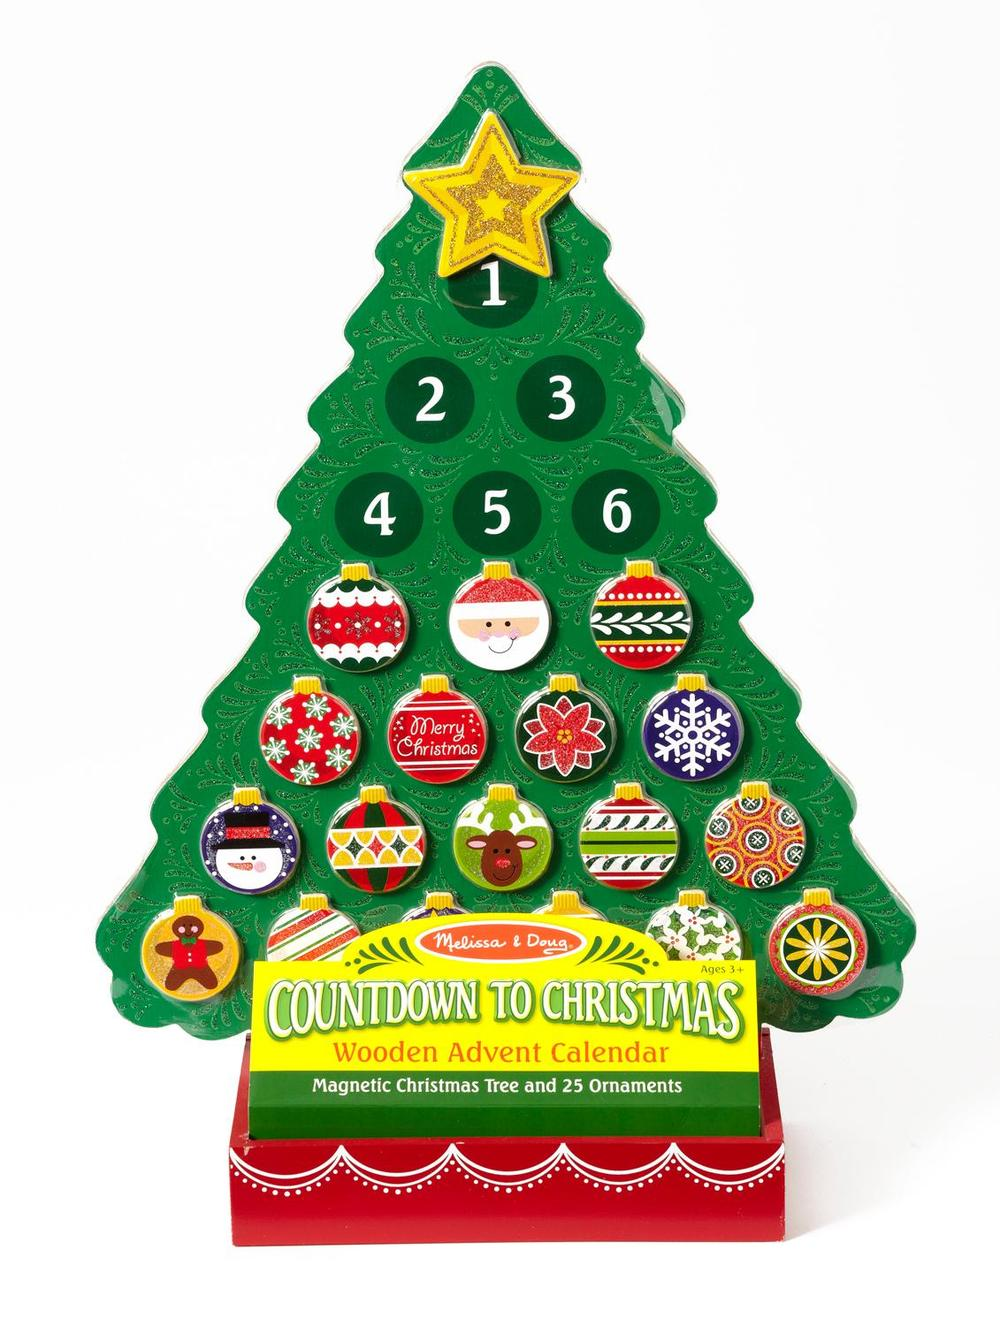 Countdown to Christmas: magnetic Christmas tree and ornaments, Ages 3+ $19.99